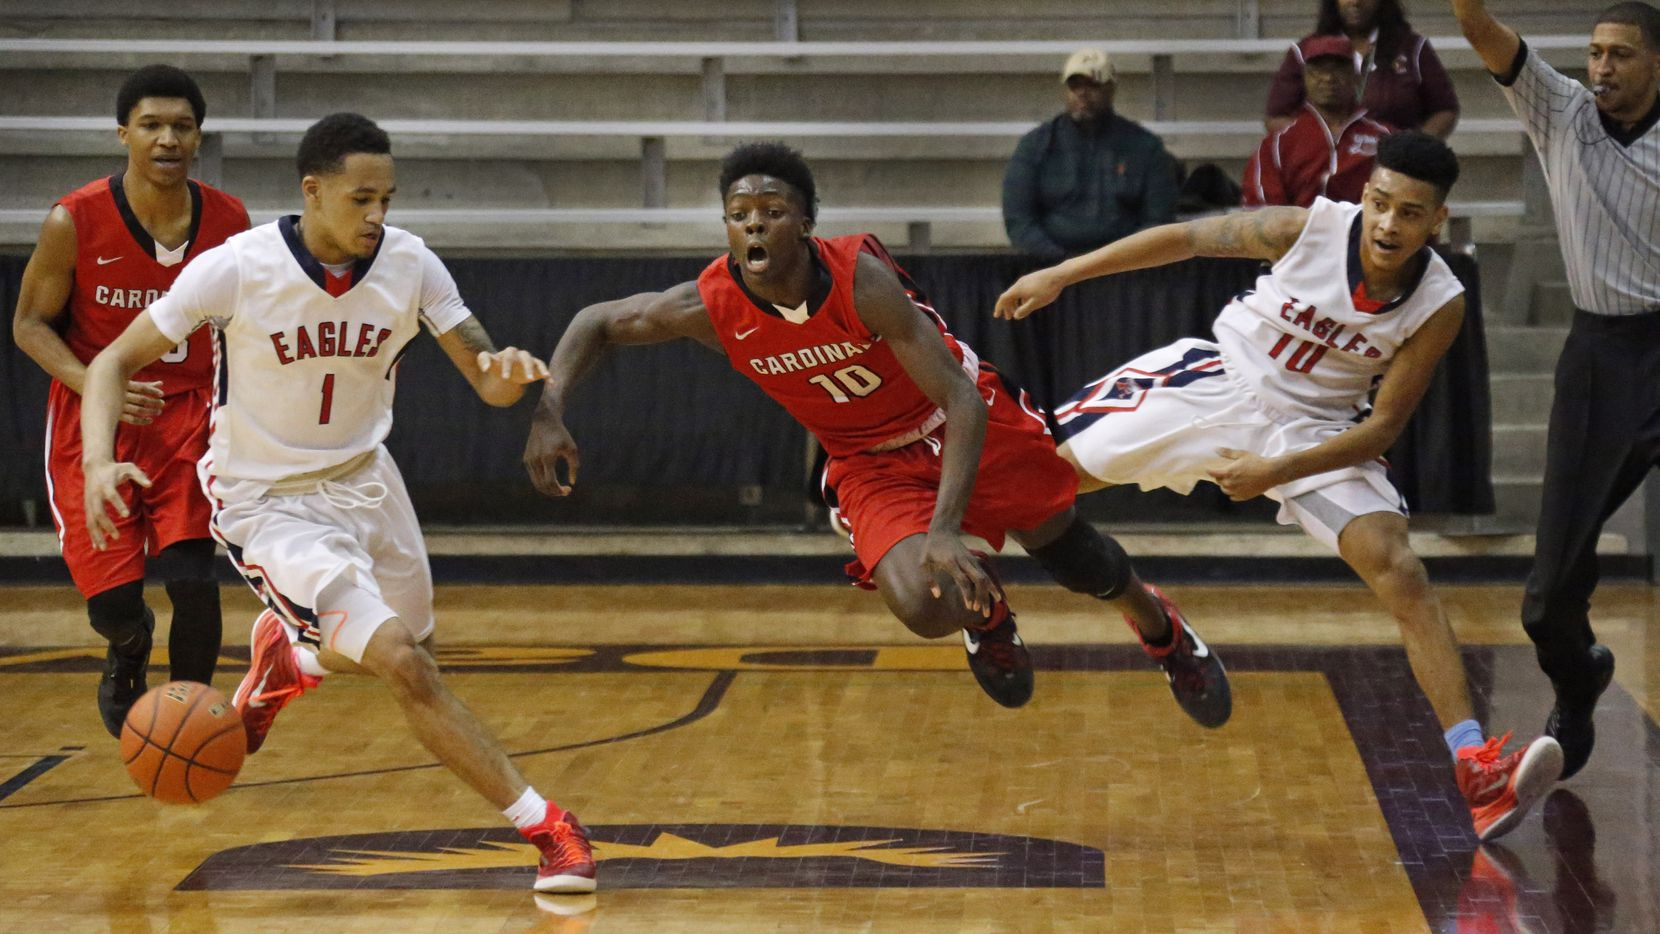 Humble Atascocita's Brandon Loville (1) and Greg Shead (10) pressured MacArthur's Andrew Jones (10) as he brought the ball up court in the fourth quarter of a Class 6A Region II playoff game in Dallas in March  2015.